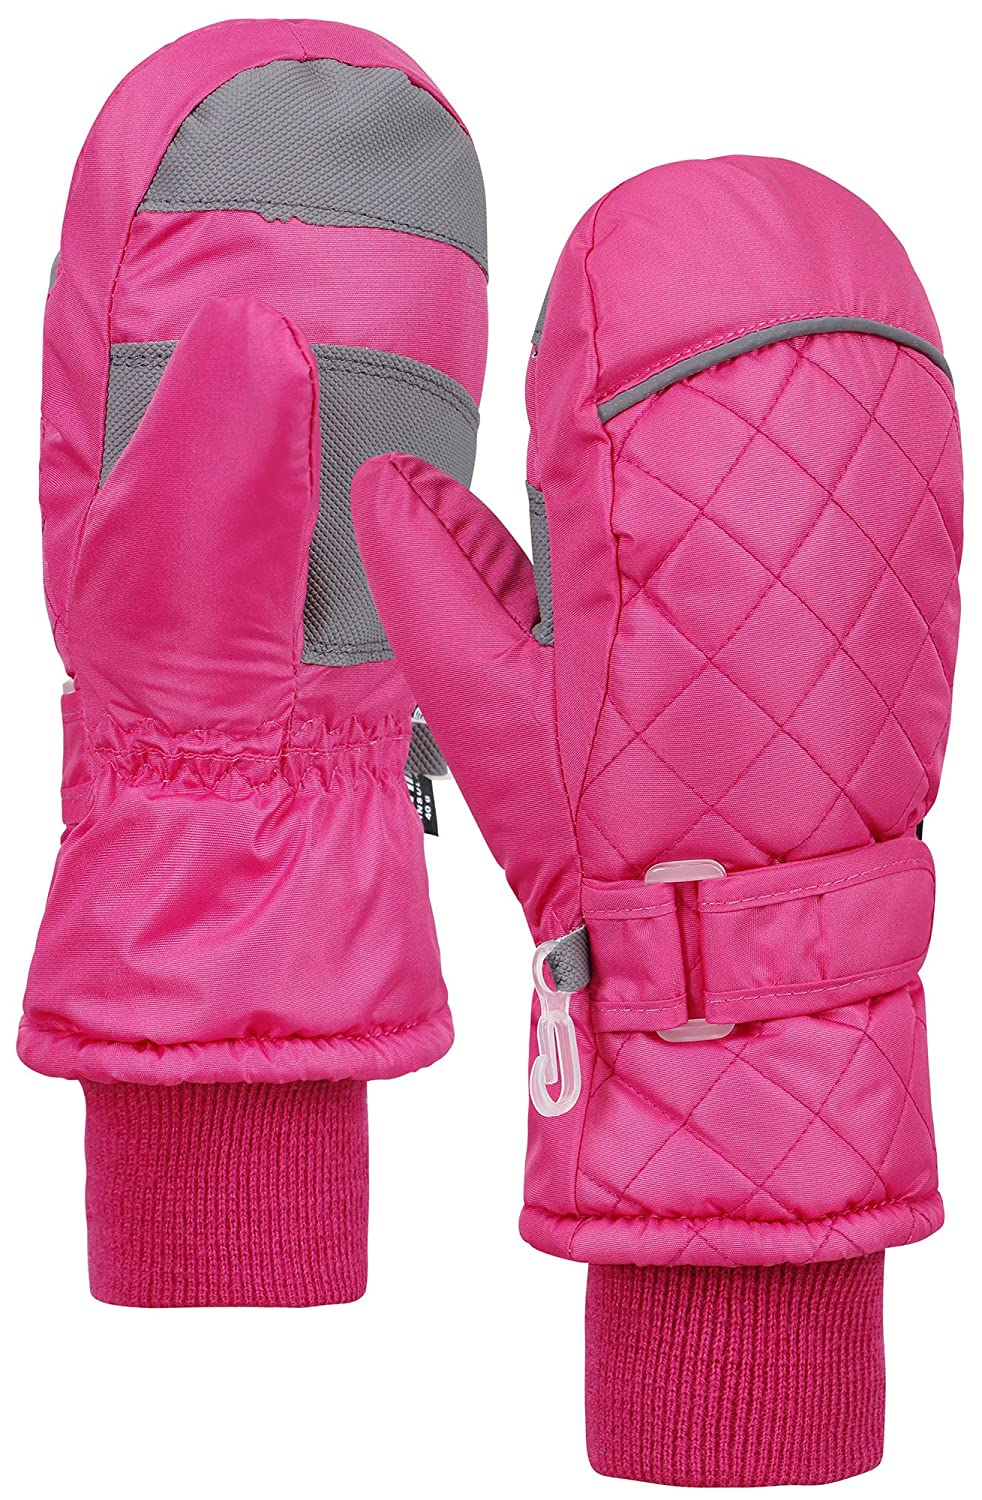 ANDORRA Kids Weather-Proof Thinsulate Winter Mittens, Long Snow Cuff